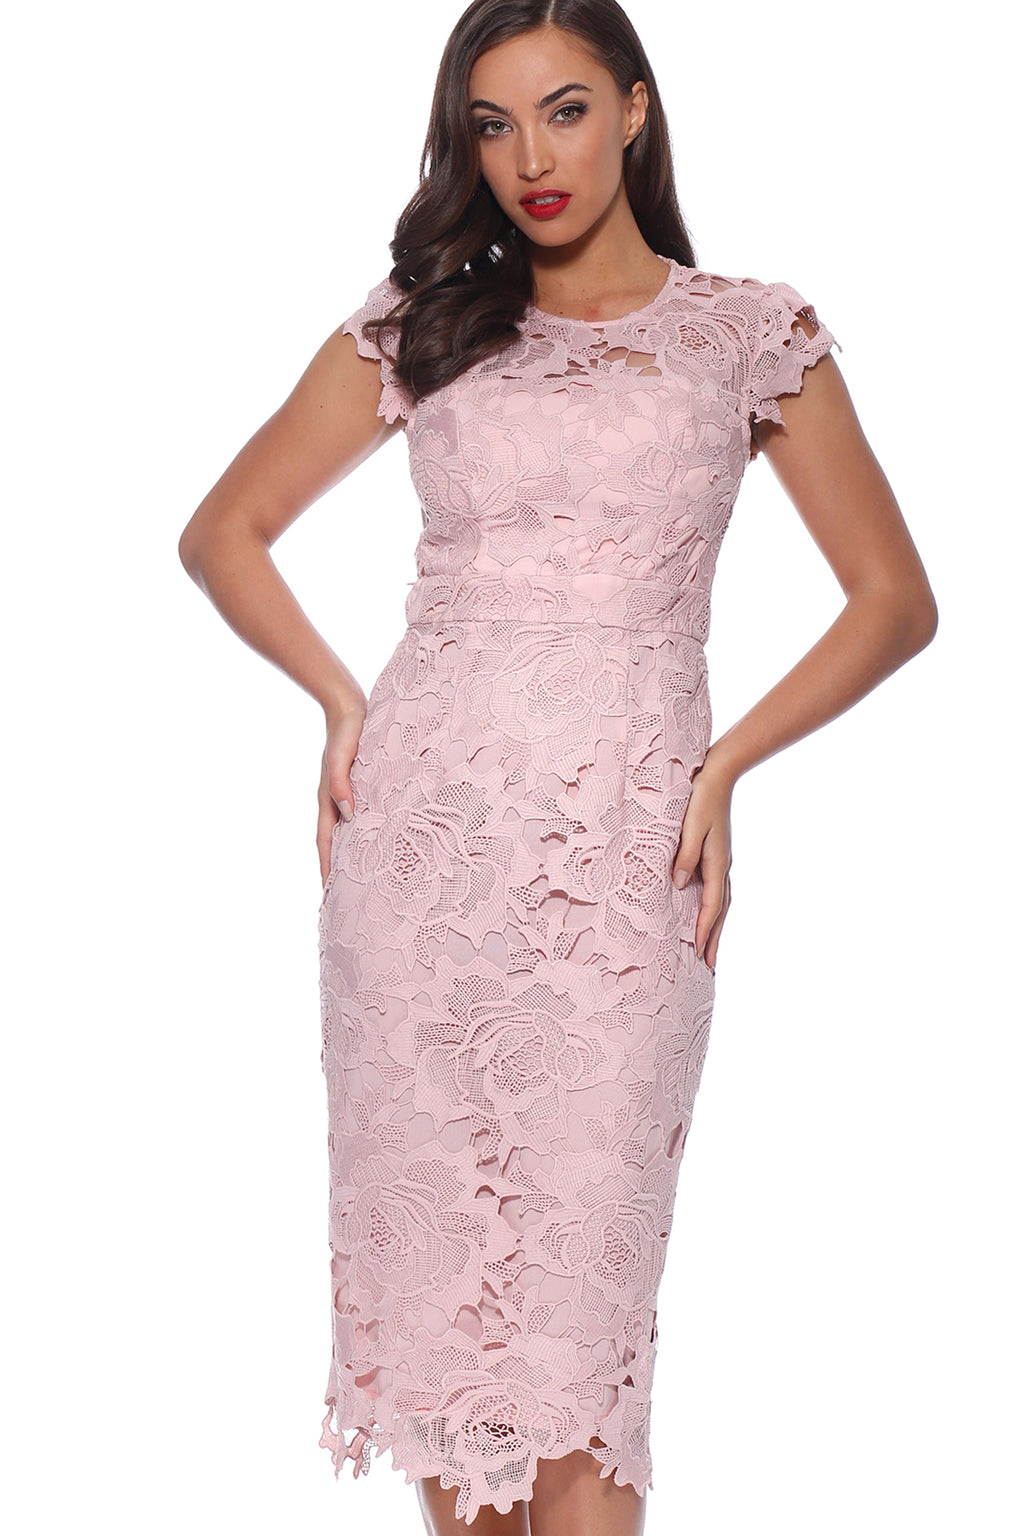 Pink and Lace Dress